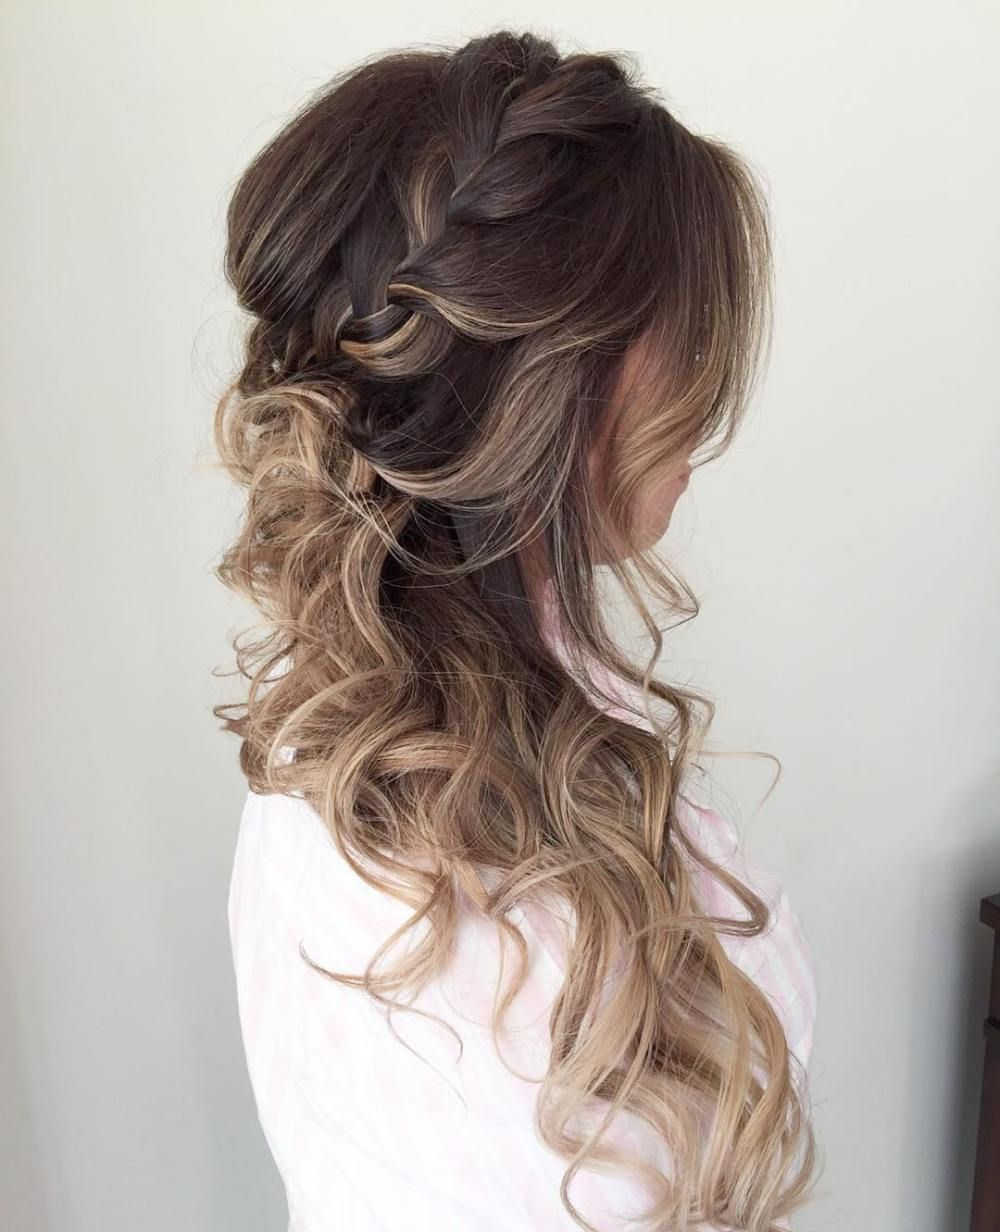 40 picture-perfect hairstyles for long thin hair | wedding